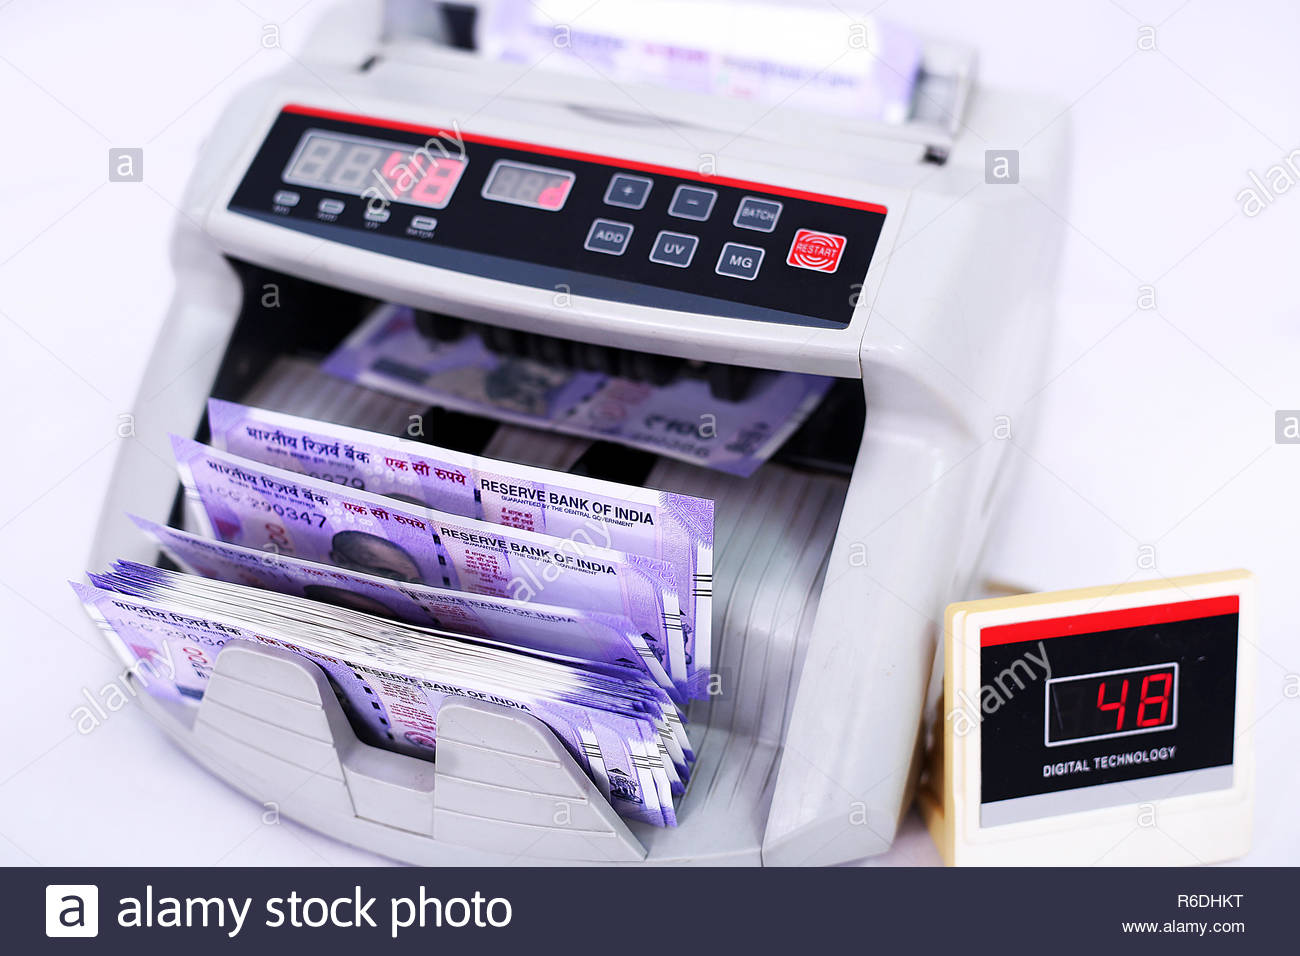 Money counting machine for Indian banknote machine Isolated on 1300x956